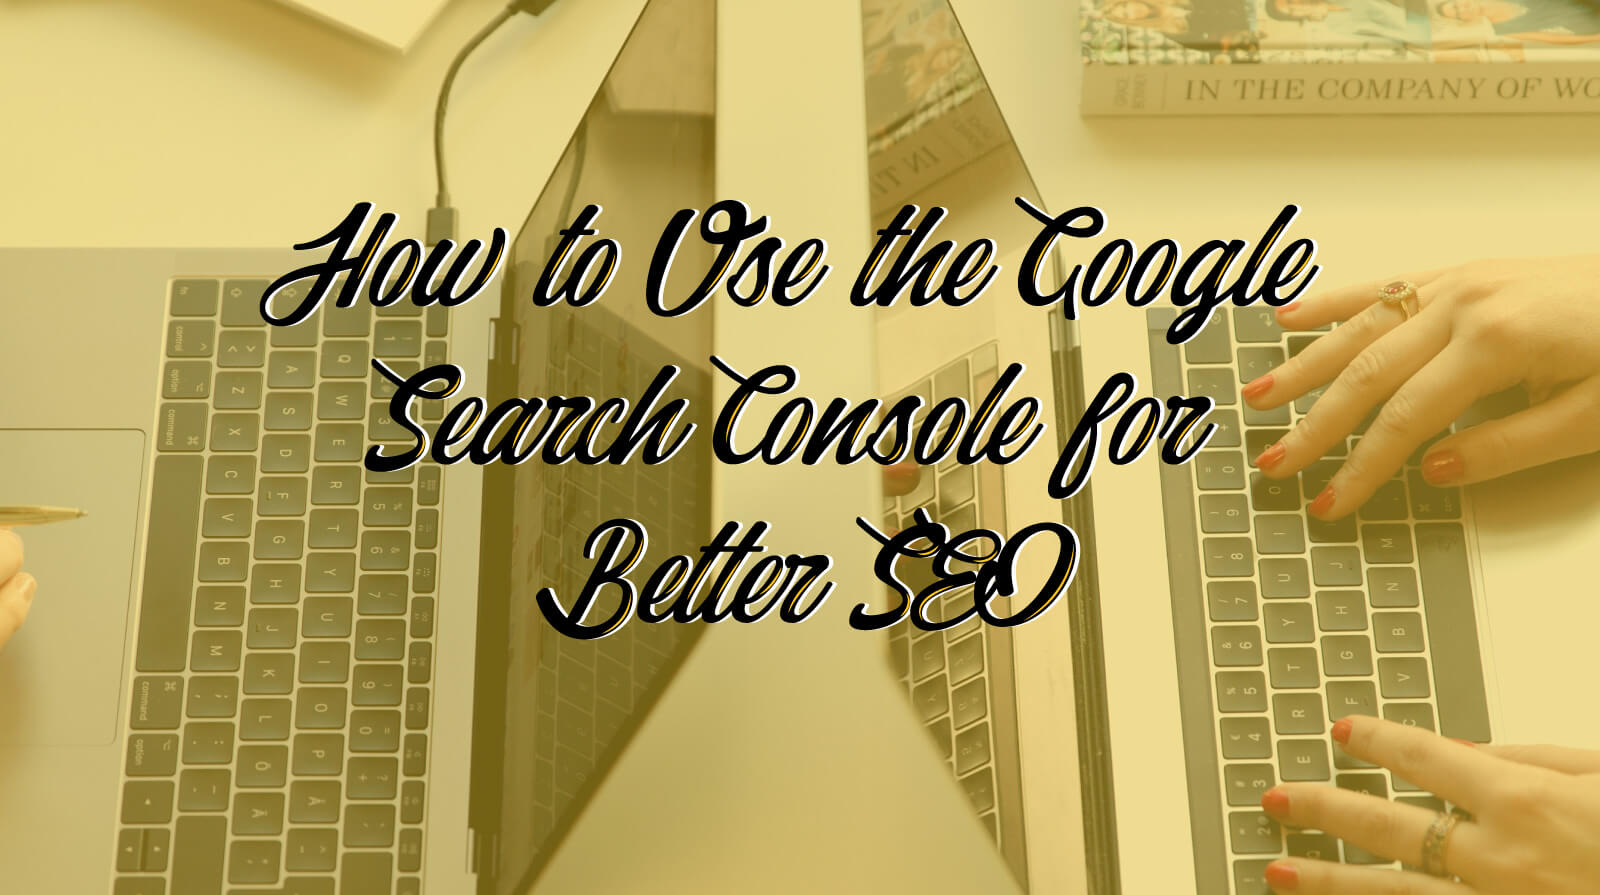 How To use the google search console for better SEO